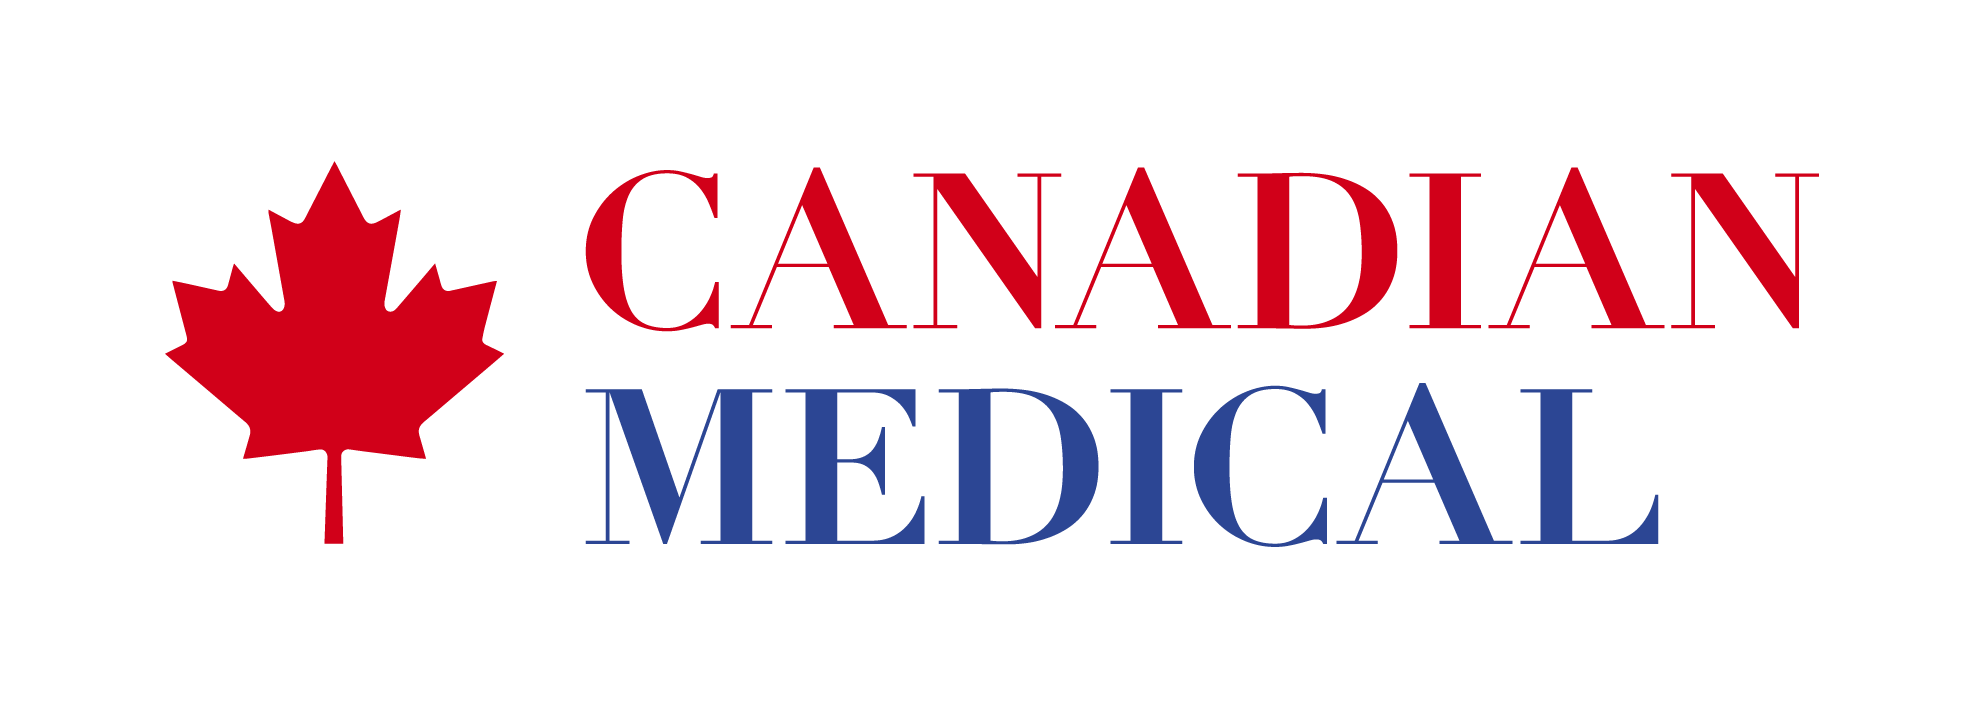 Canadian Medical